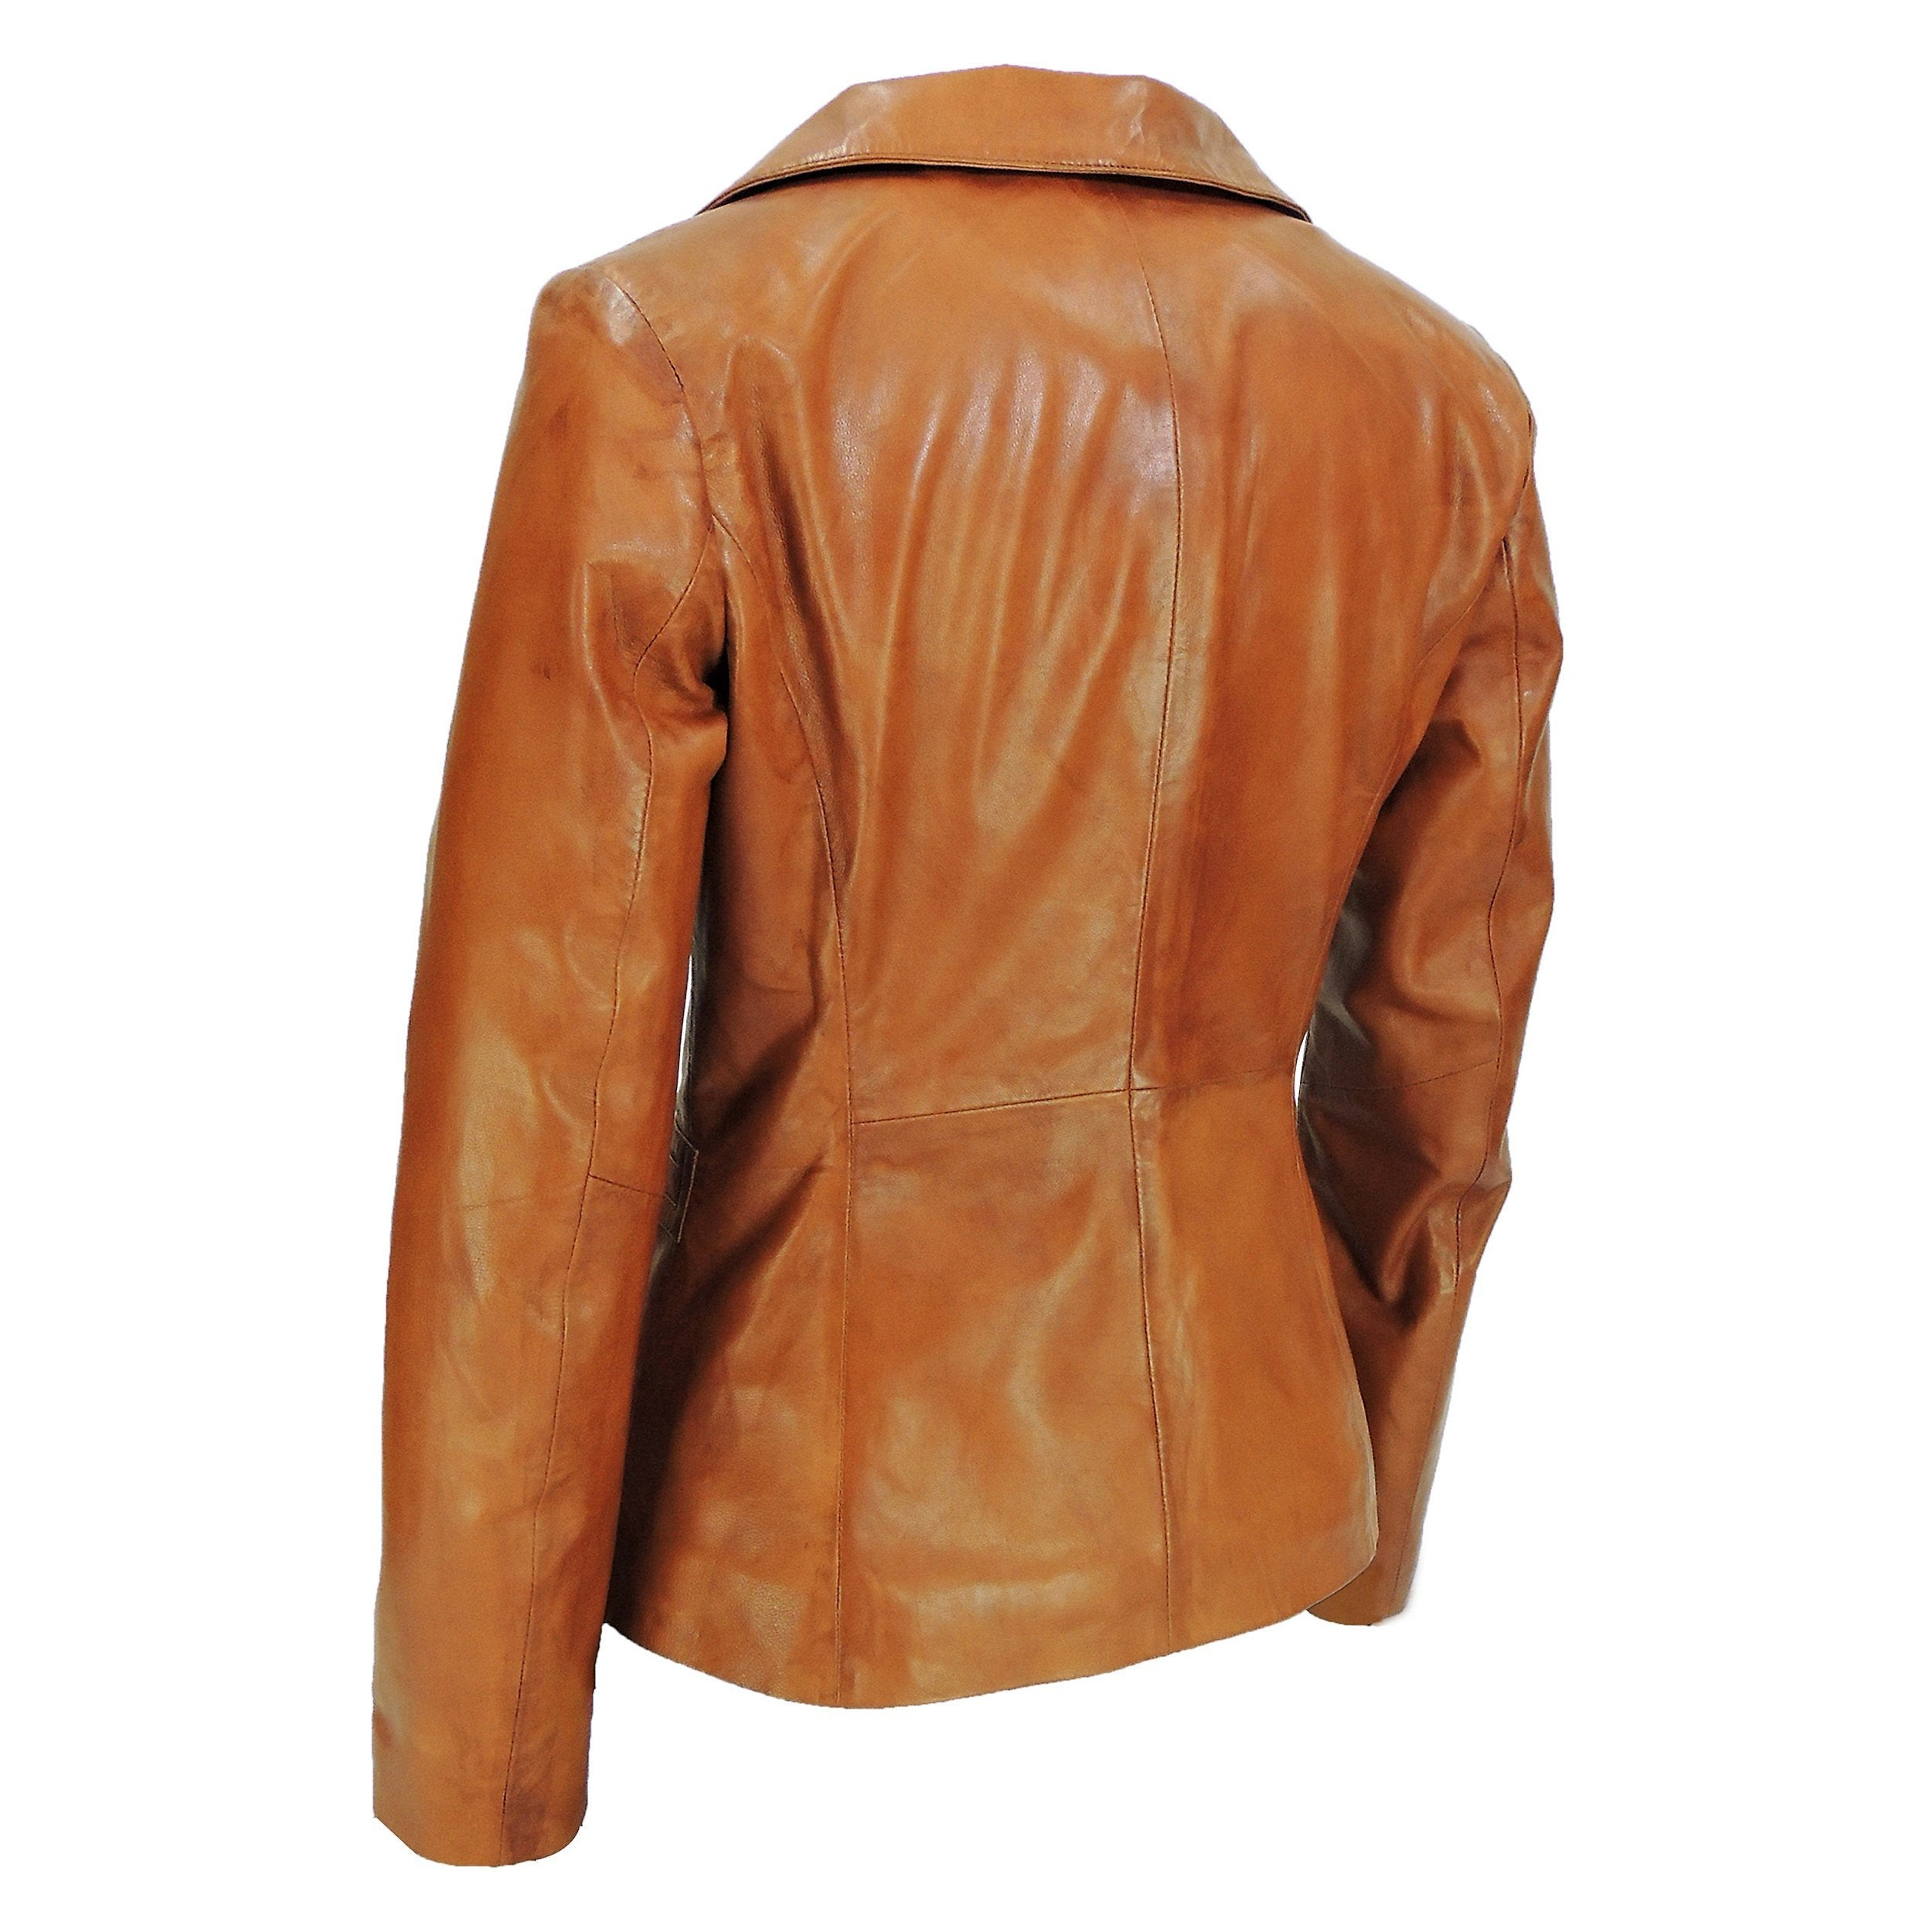 Womens Leather Blazer - Women's Stylish Caramel Tan Leather Blazer